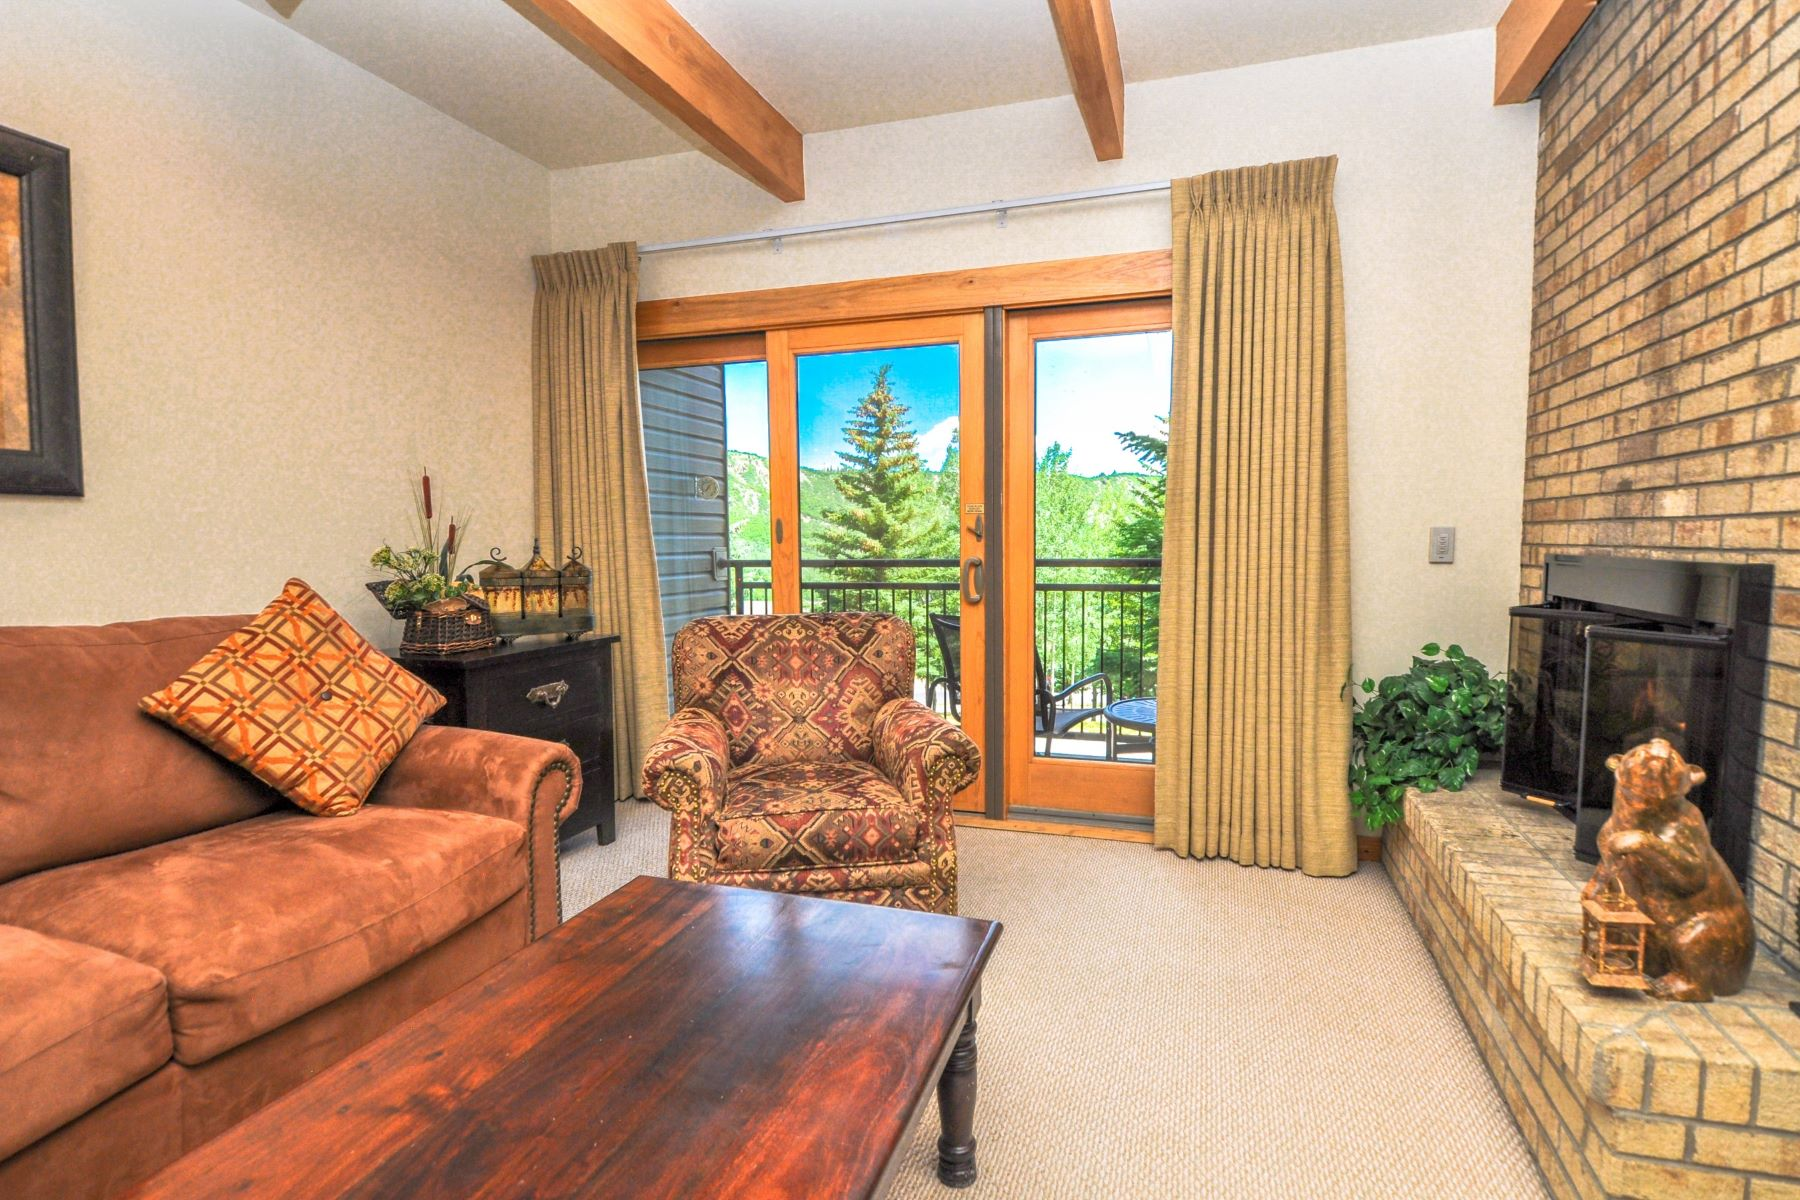 Condominium for Sale at Timberline A2C 690 Carriage Way Unit A-2C Snowmass Village, Colorado, 81615 United States